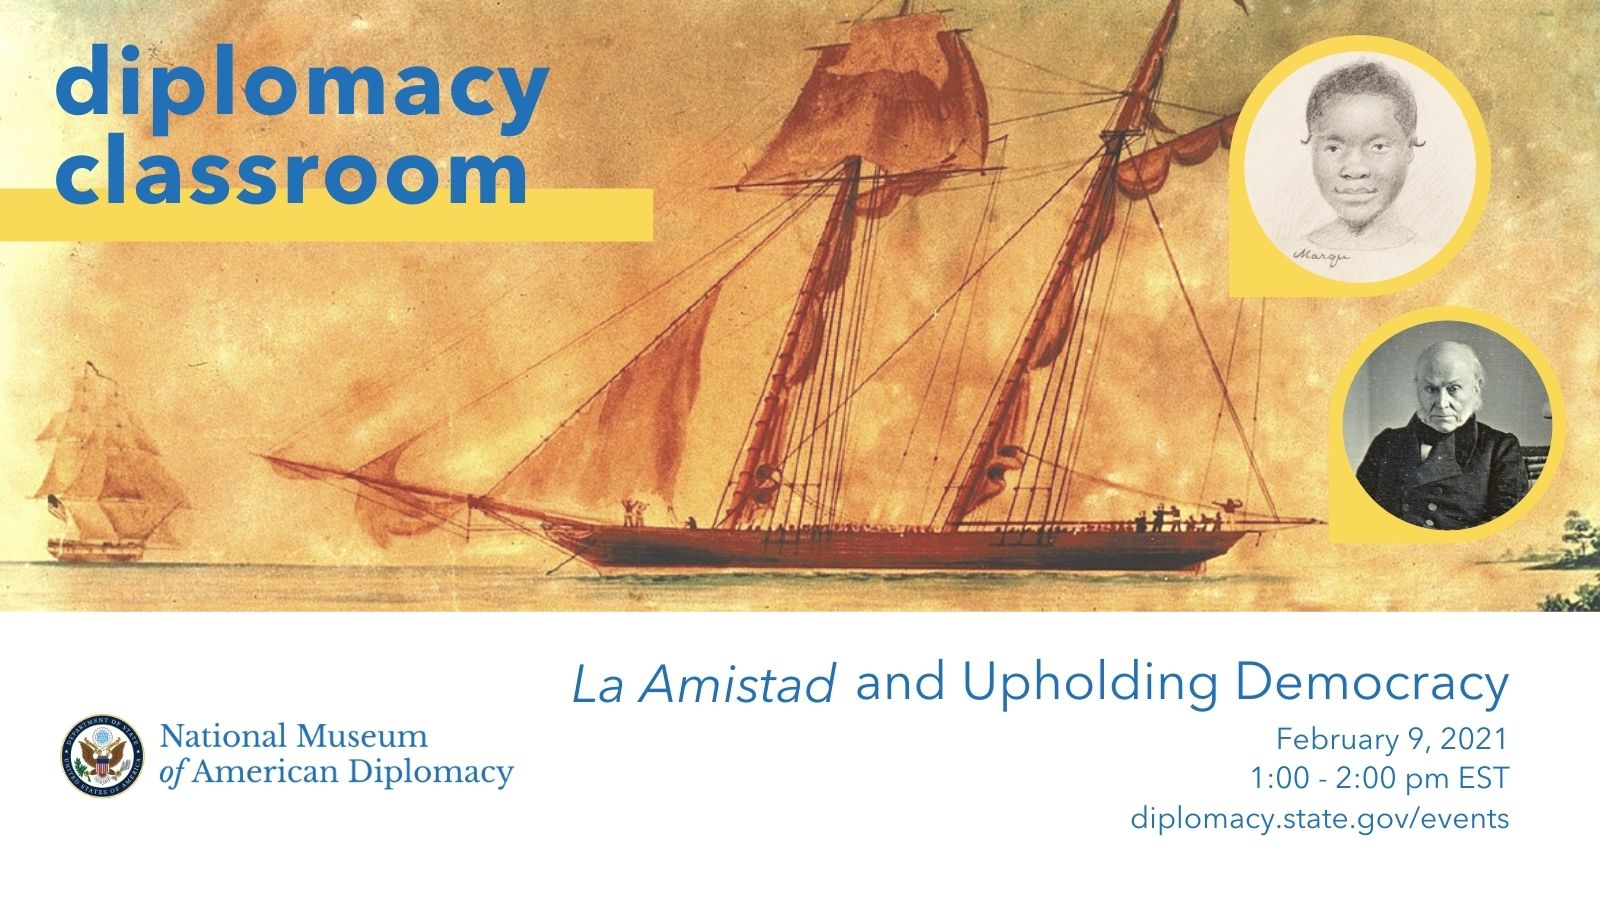 Amistad Diplomacy Classroom Graphic